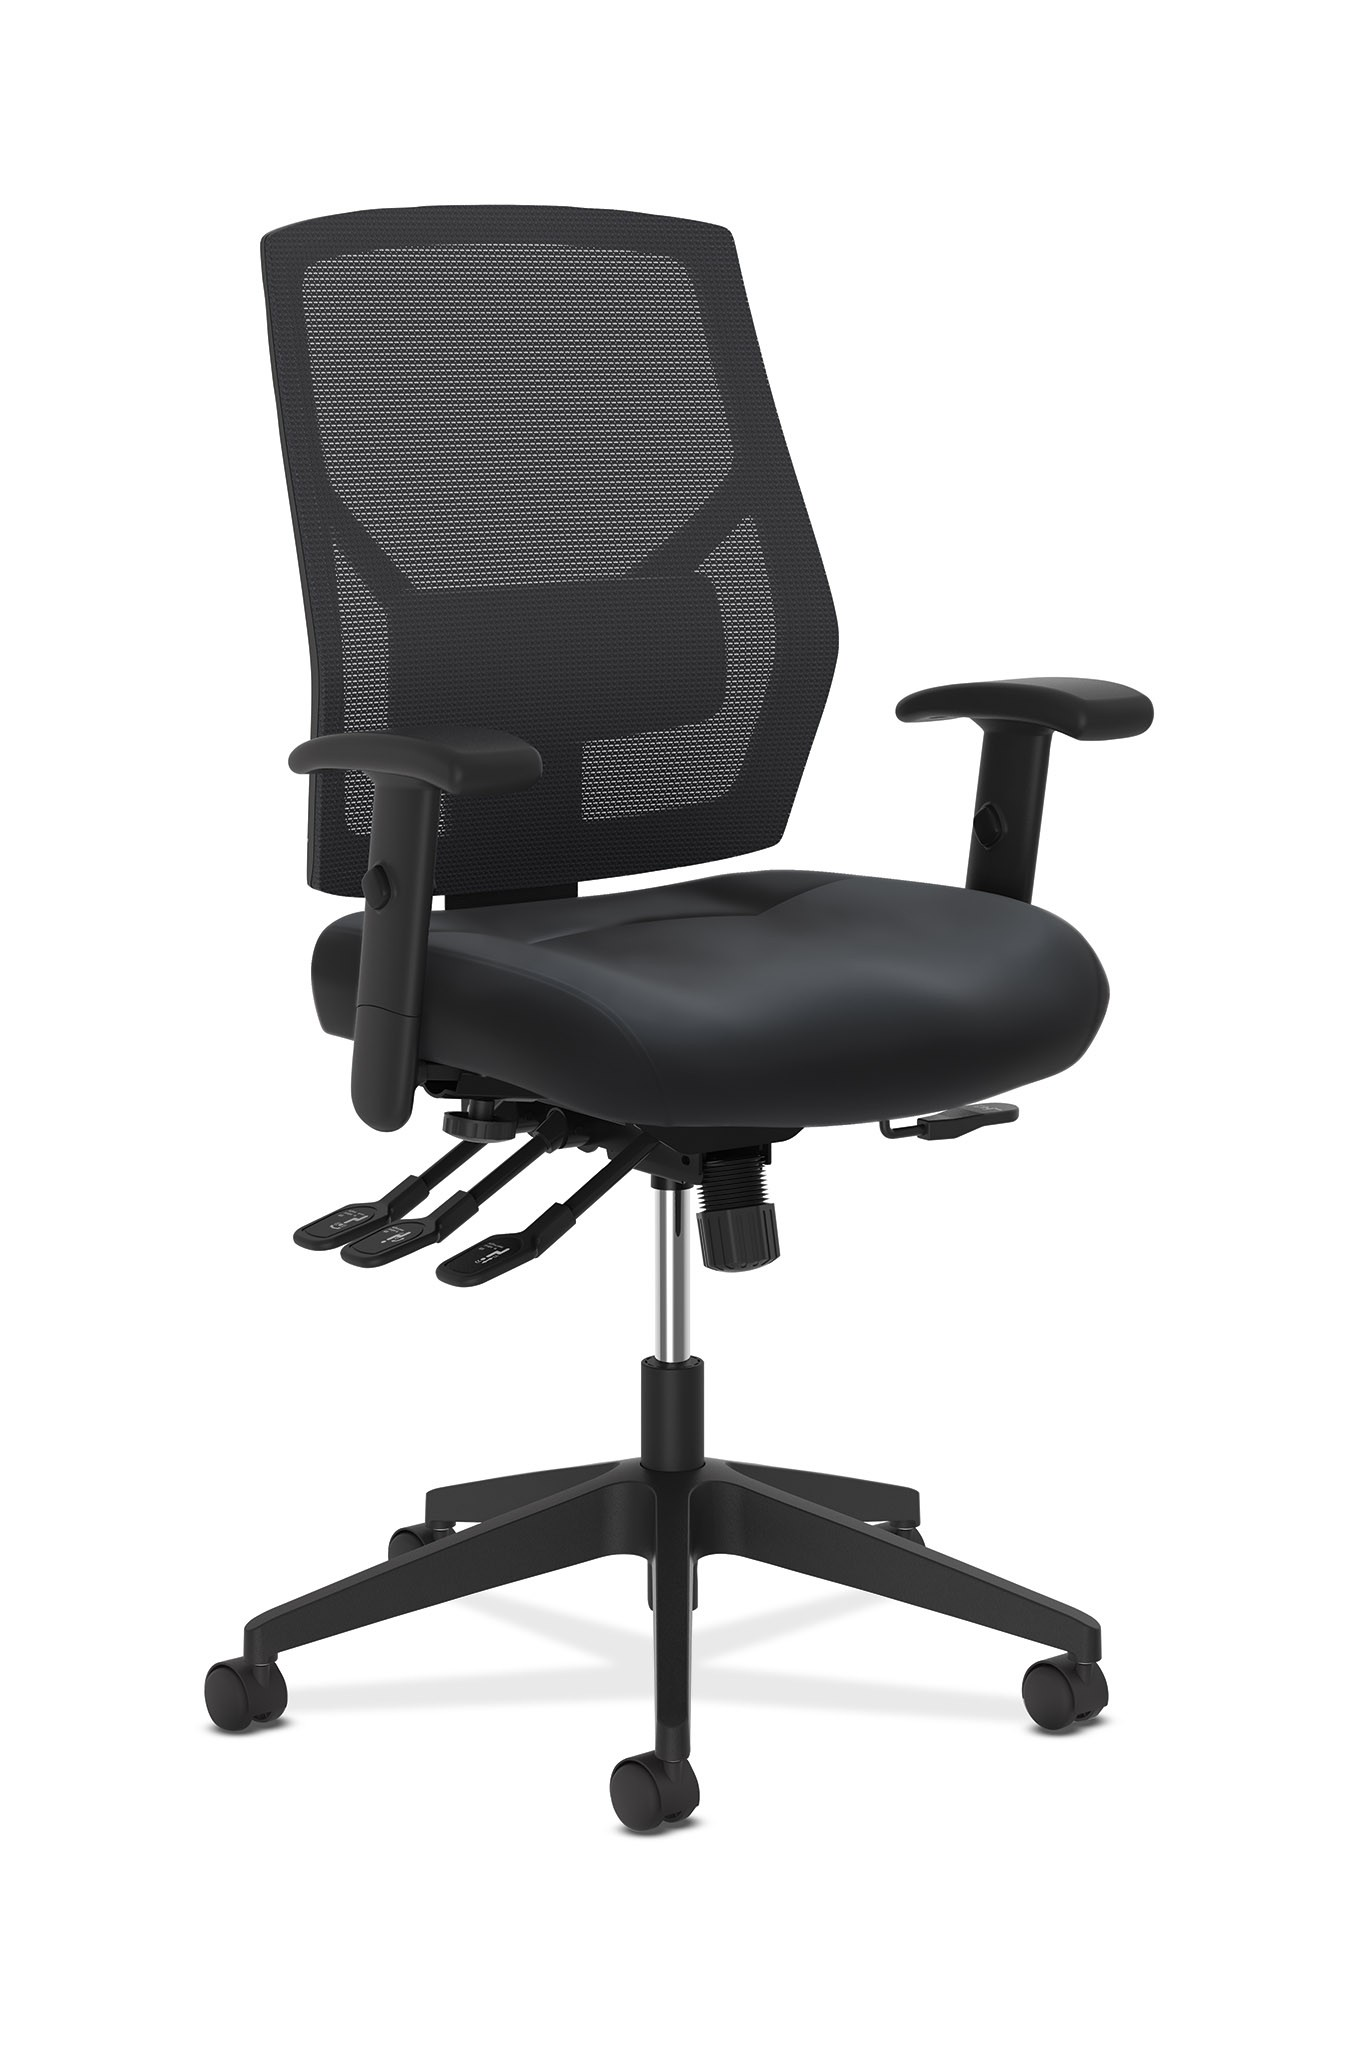 basyx by hon crio hvl582 high back task chair